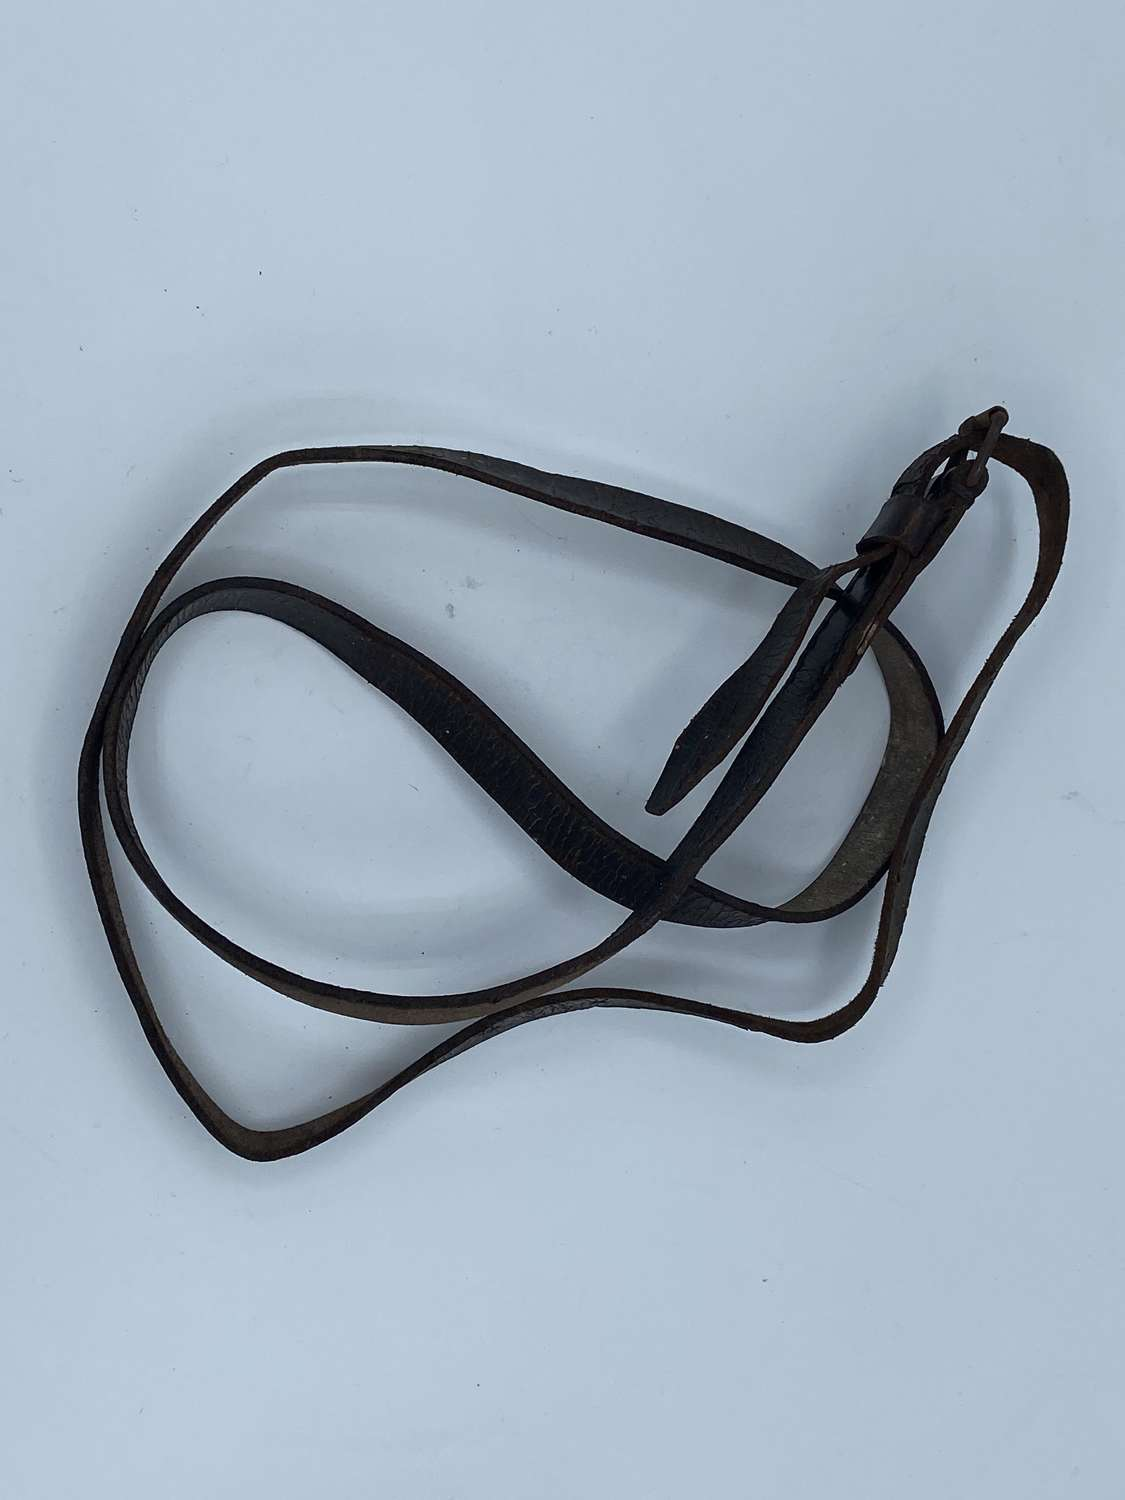 Ww2 German Wehrmacht infantry Leather Strap For Zeltbahns